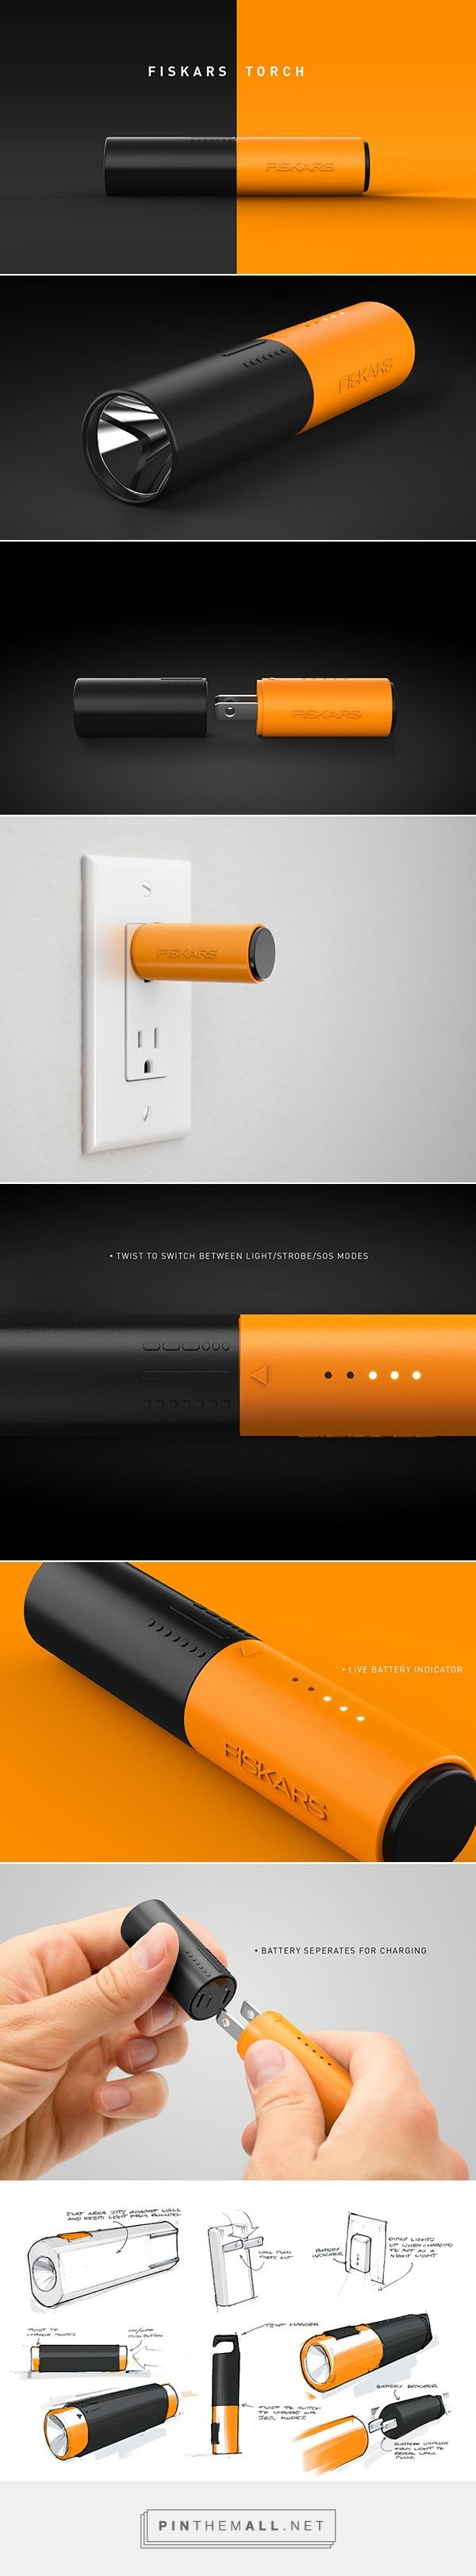 Fiskars Torch by Dan Taylor » Yanko Design - created via http://pinthemall.net